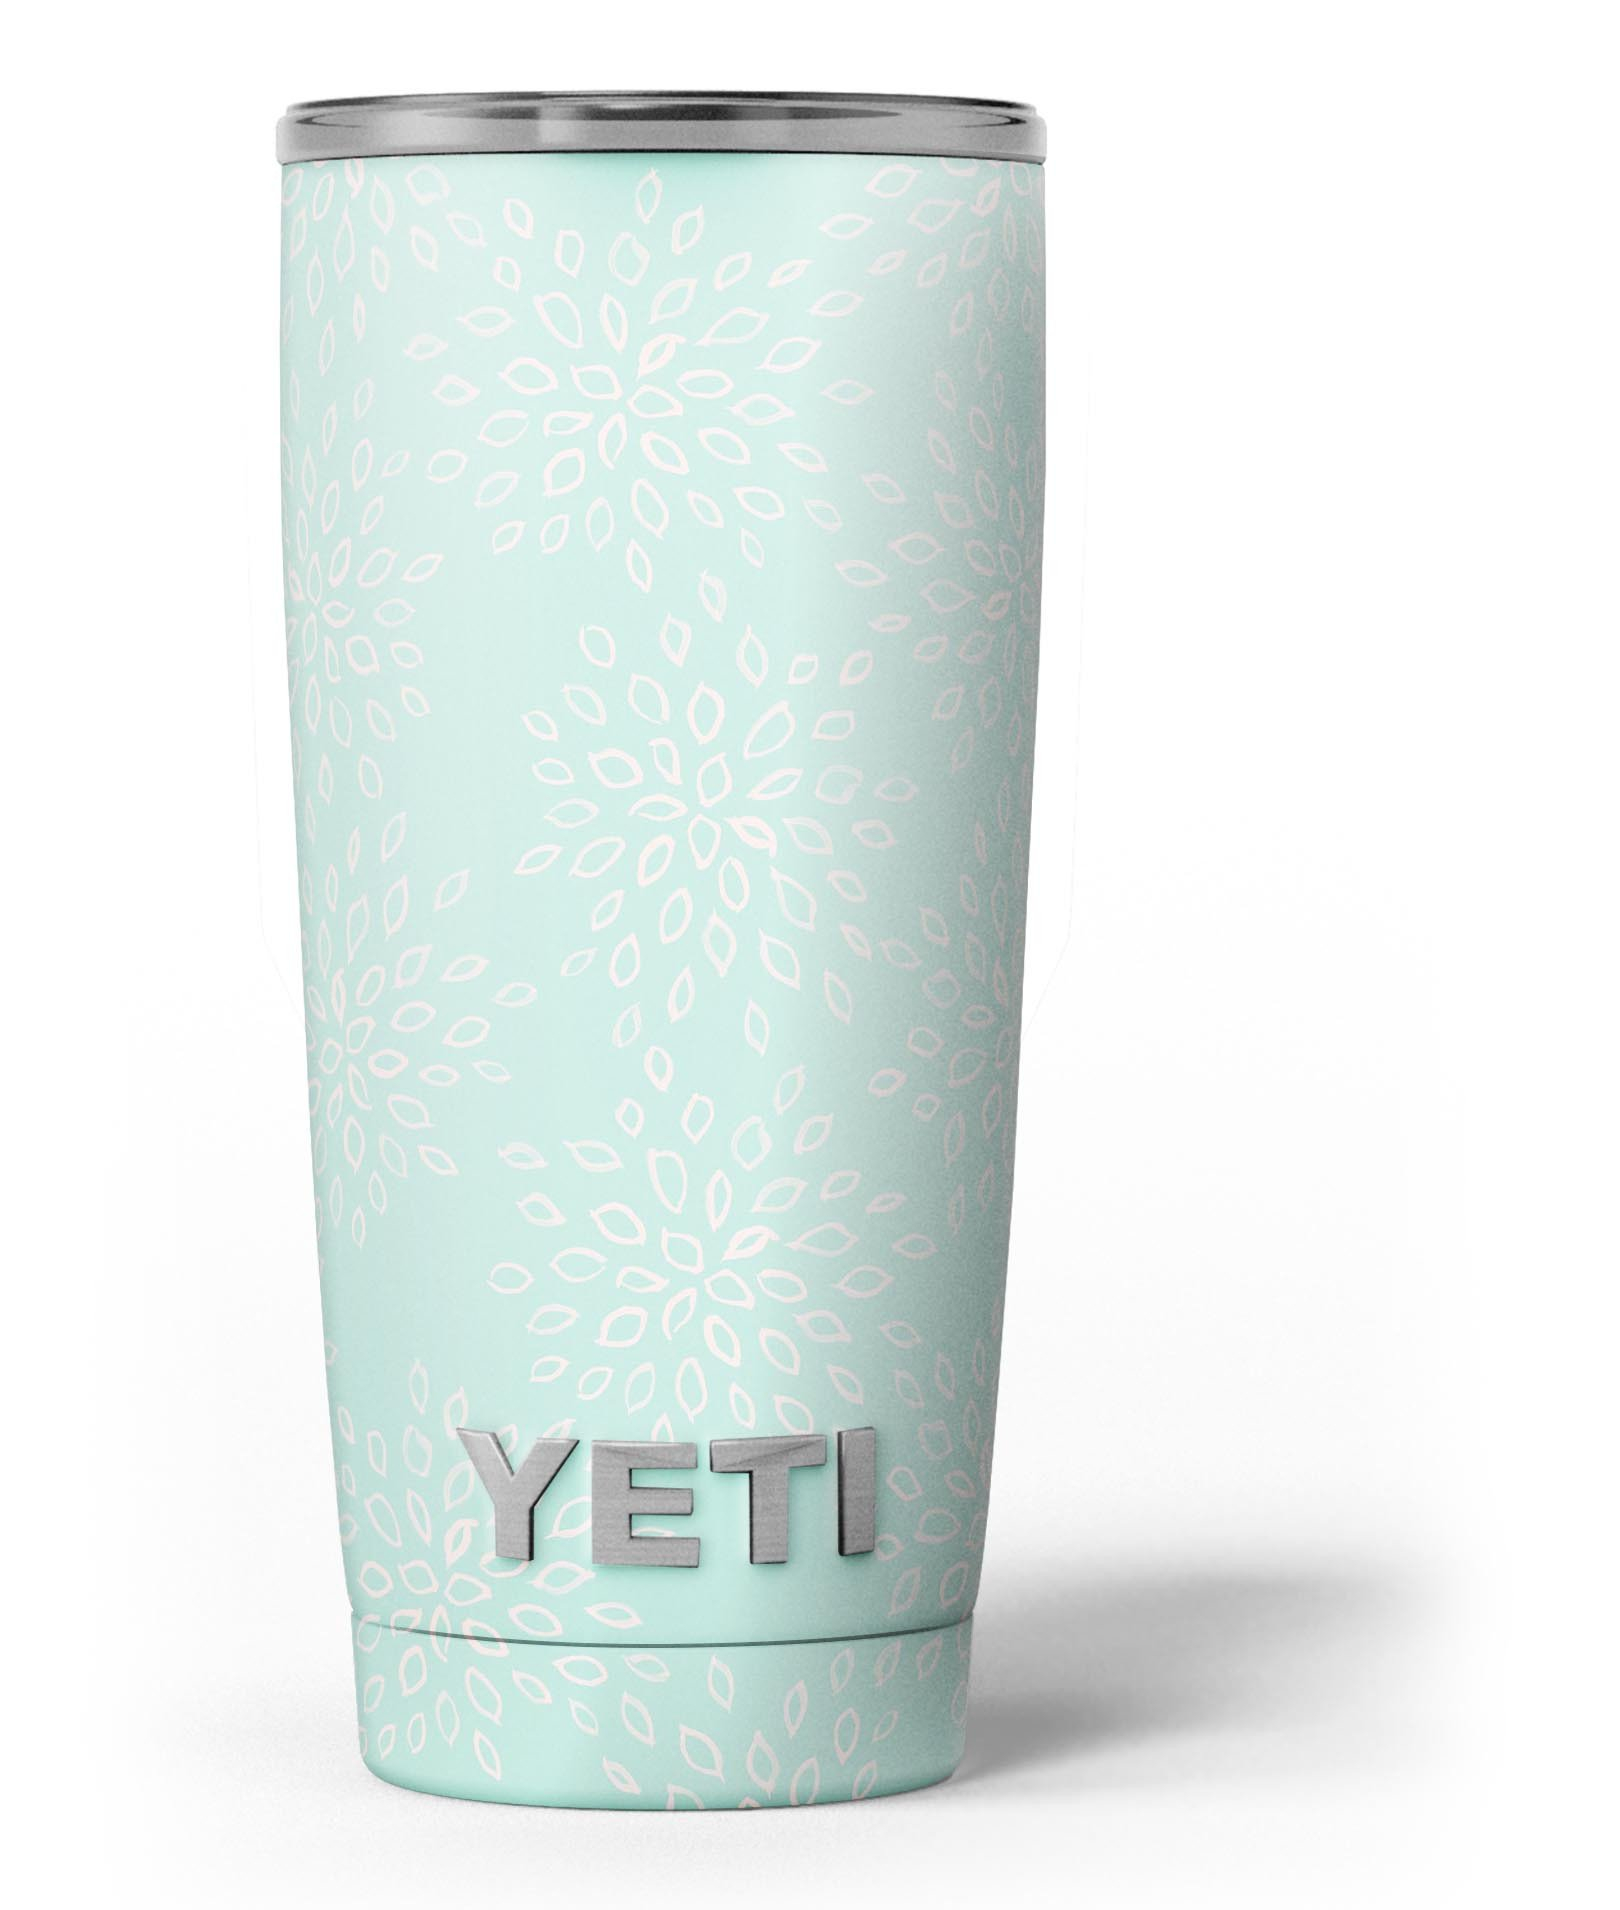 Image of The Mint Flower Sprout - Skin Decal Vinyl Wrap Kit compatible with the Yeti Rambler Cooler Tumbler Cups